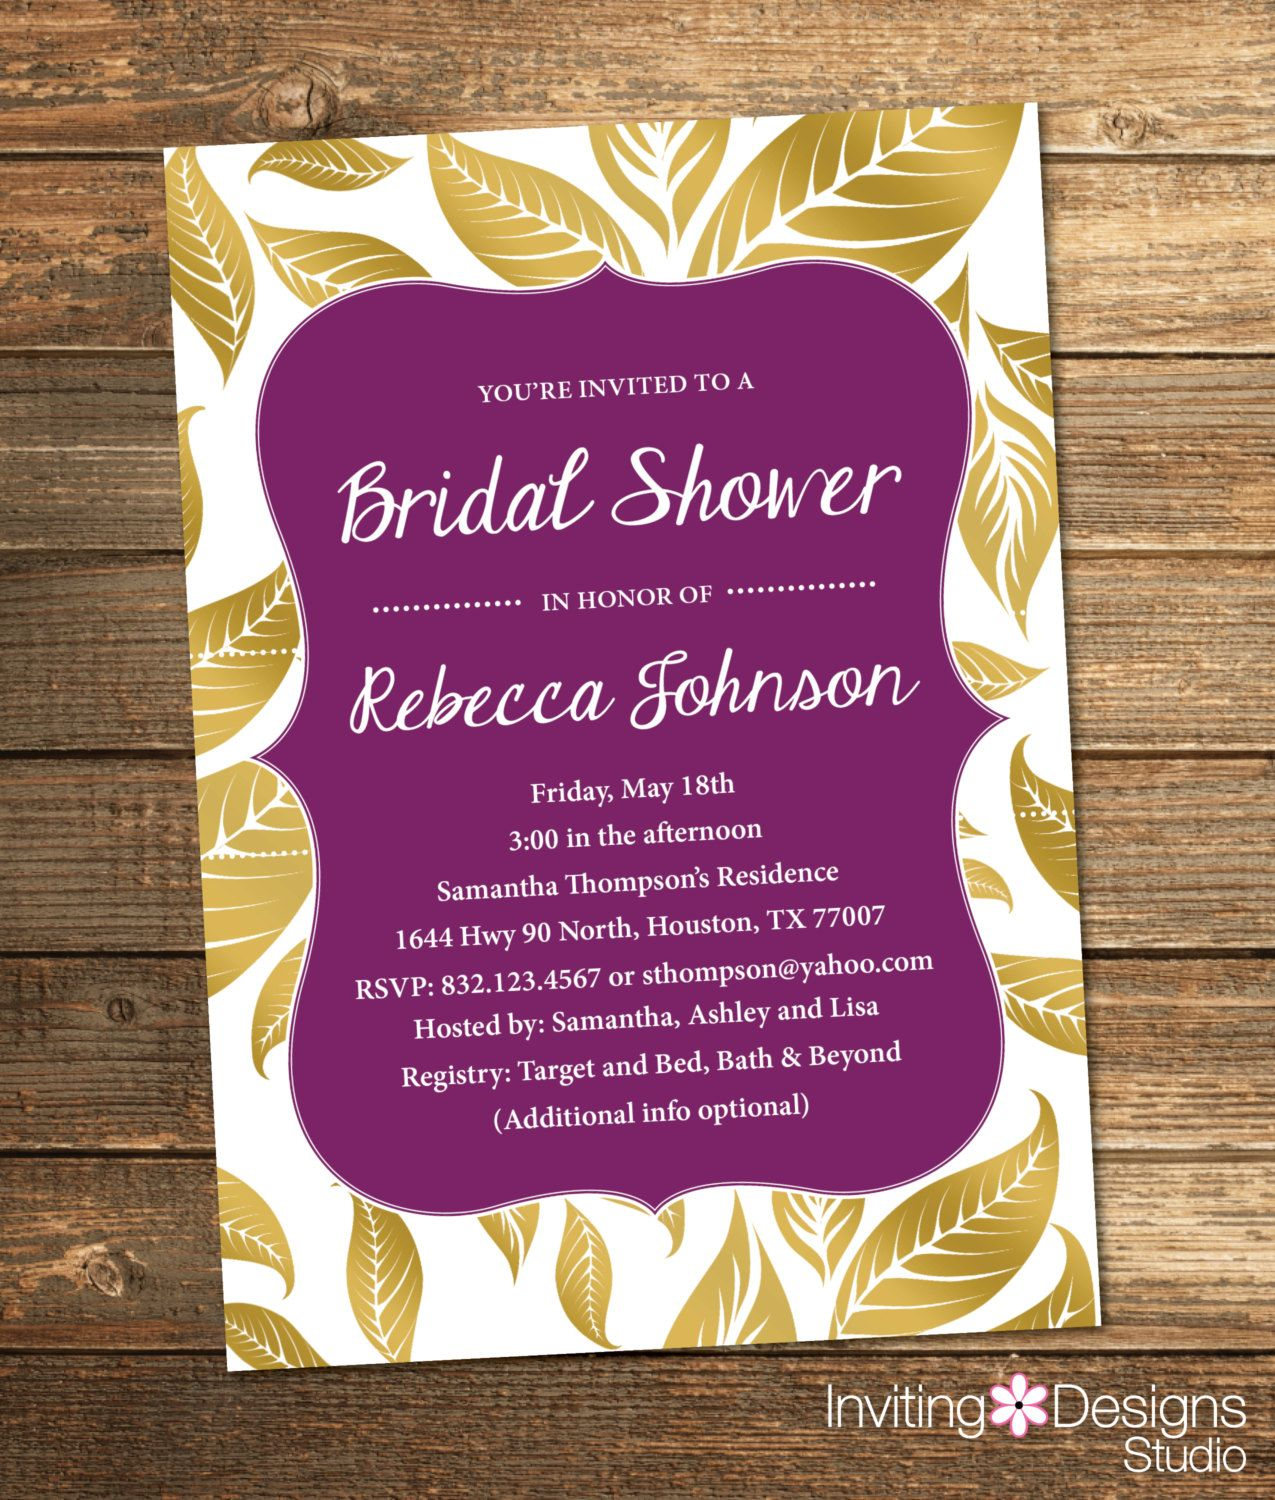 Bridal Shower Invitation Gold And Pink Leaves Fall Gold Purple